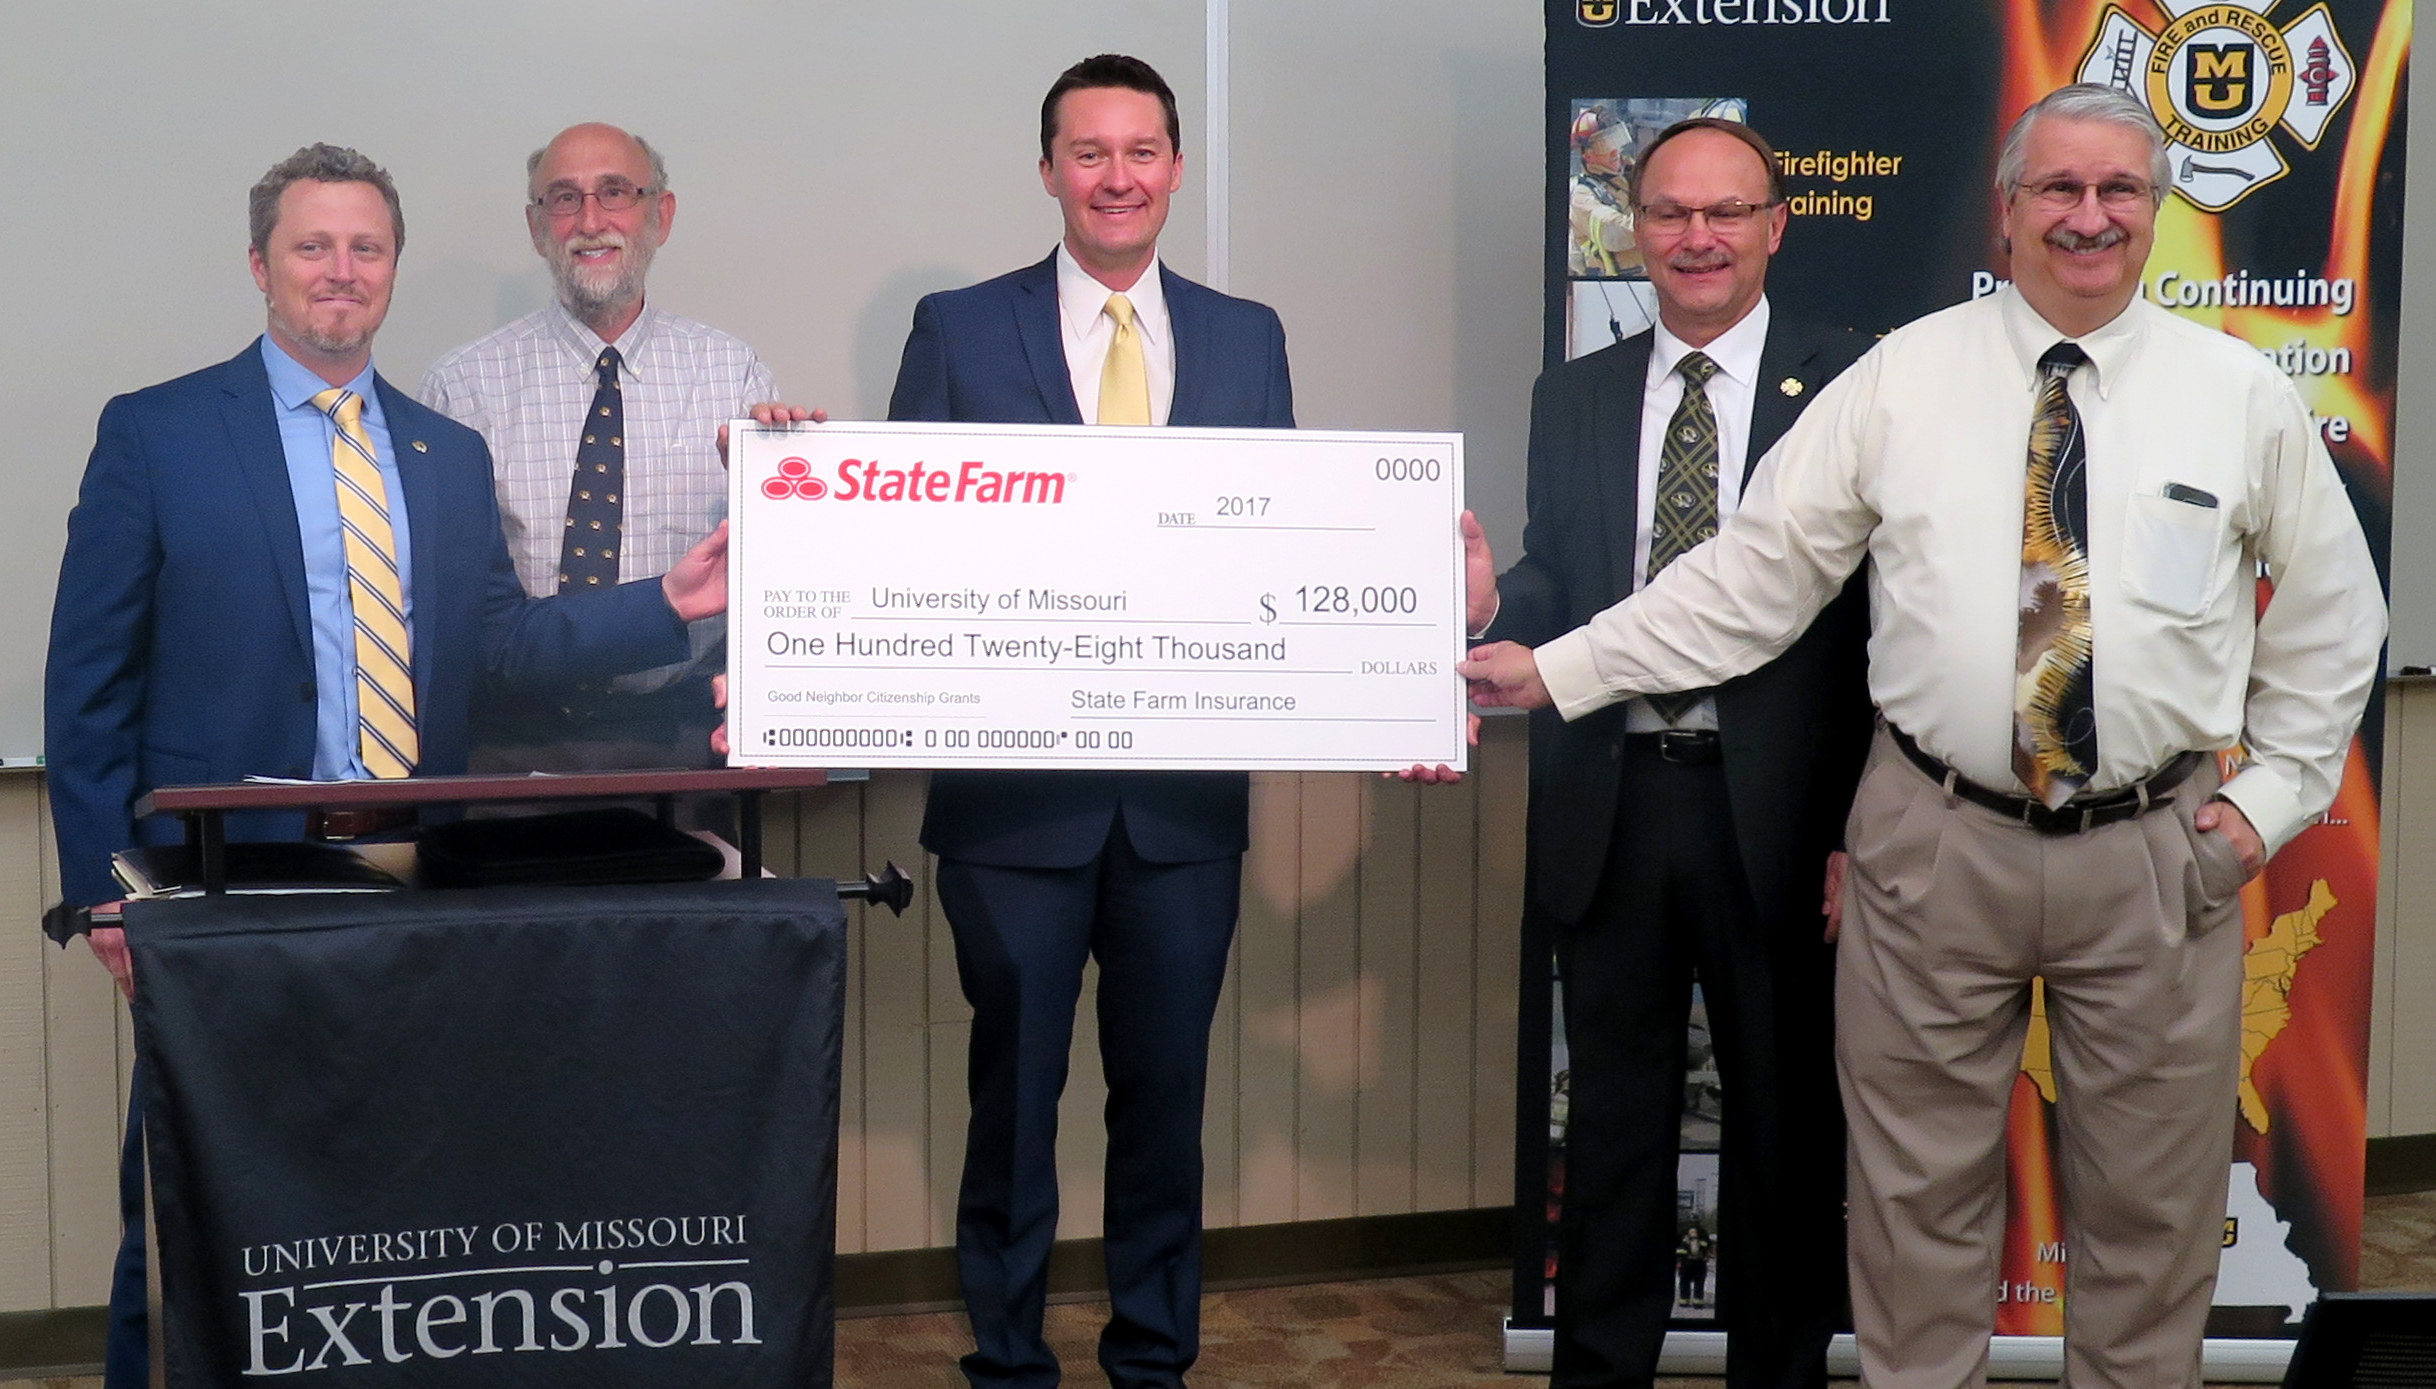 From left: Jake Logan, assistant vice chancellor for university programs; Sandy Rikoon, dean, College of Human Environmental Sciences; Ryan Kenney, State Farm agency sales leader for northeastern Missouri; Kevin Zumwalt, associate director, Fire and Rescu